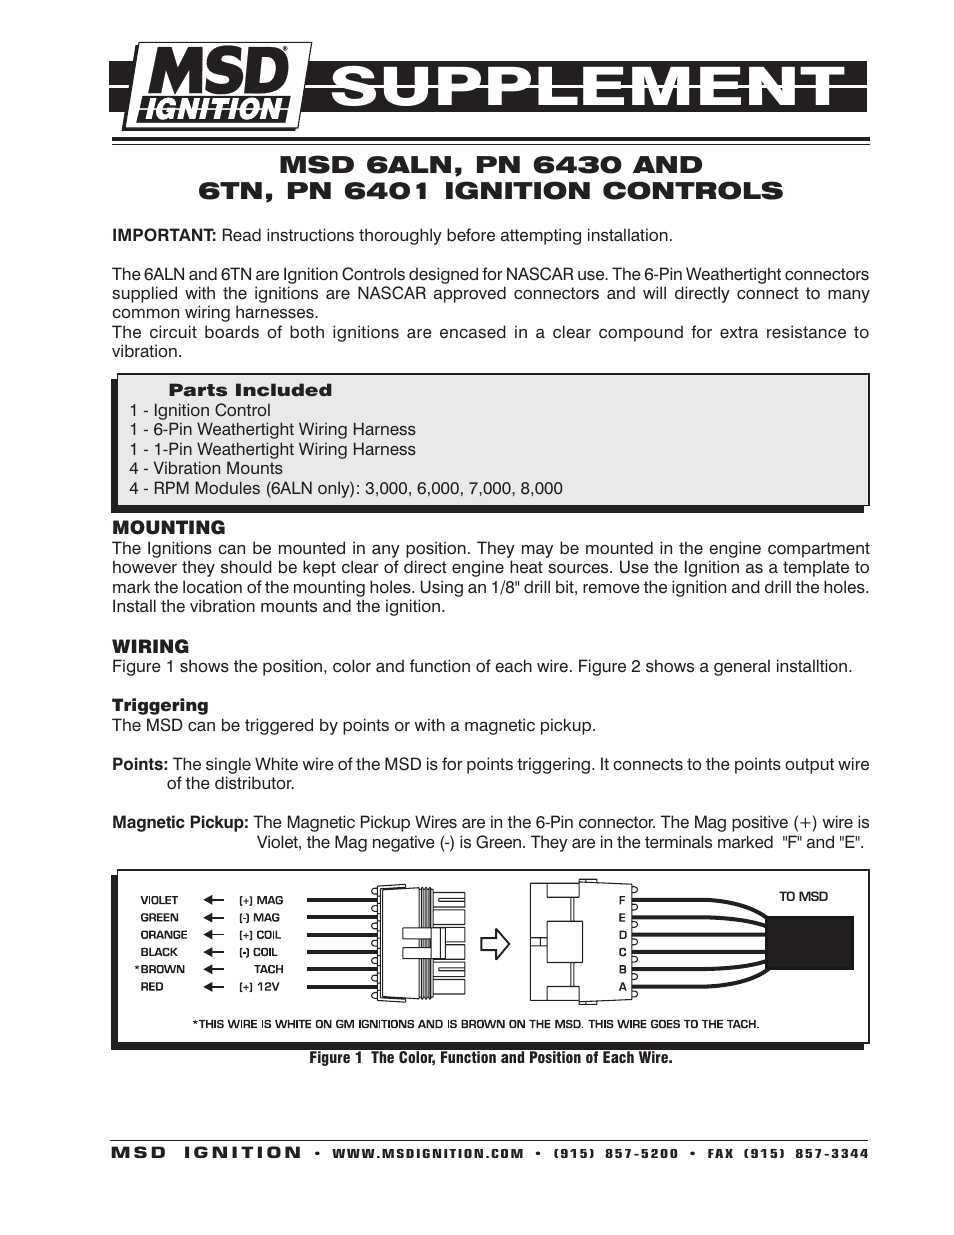 hight resolution of wiring 6tn msd diagram ignition pn6402 wiring diagram pagewiring 6tn msd diagram ignition pn6402 7